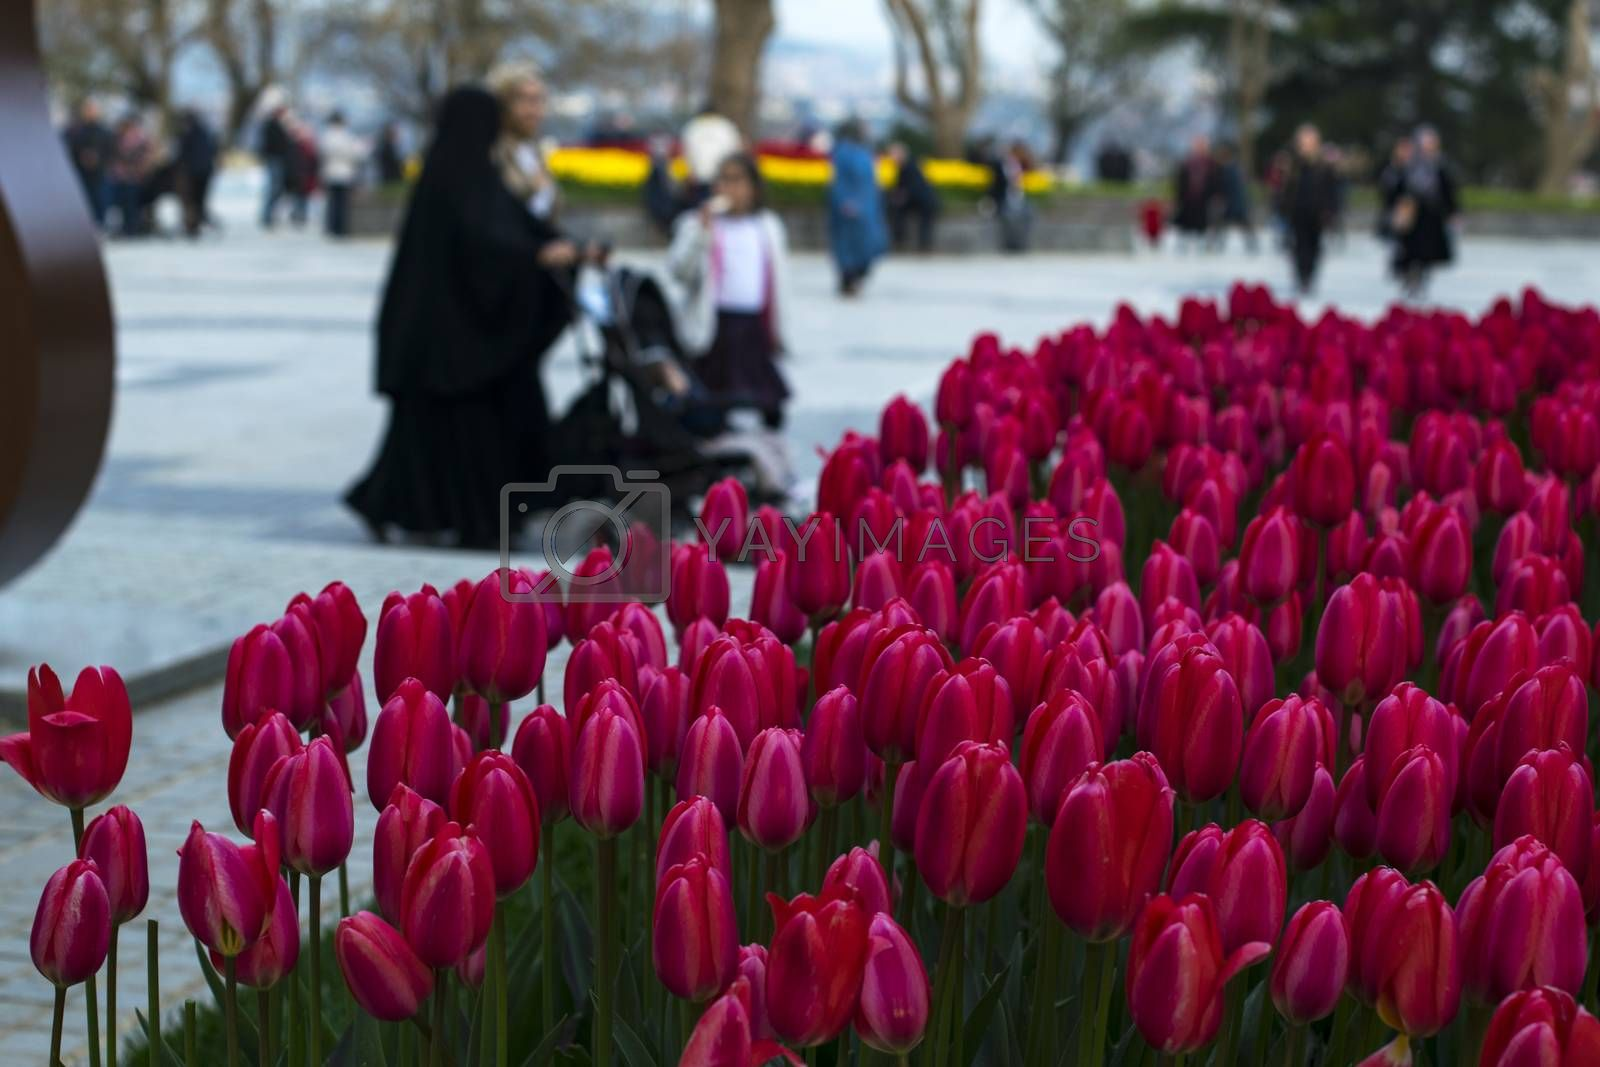 People and tulips.  Photo taken on 23rd April 2019, İstanbul, Turkey